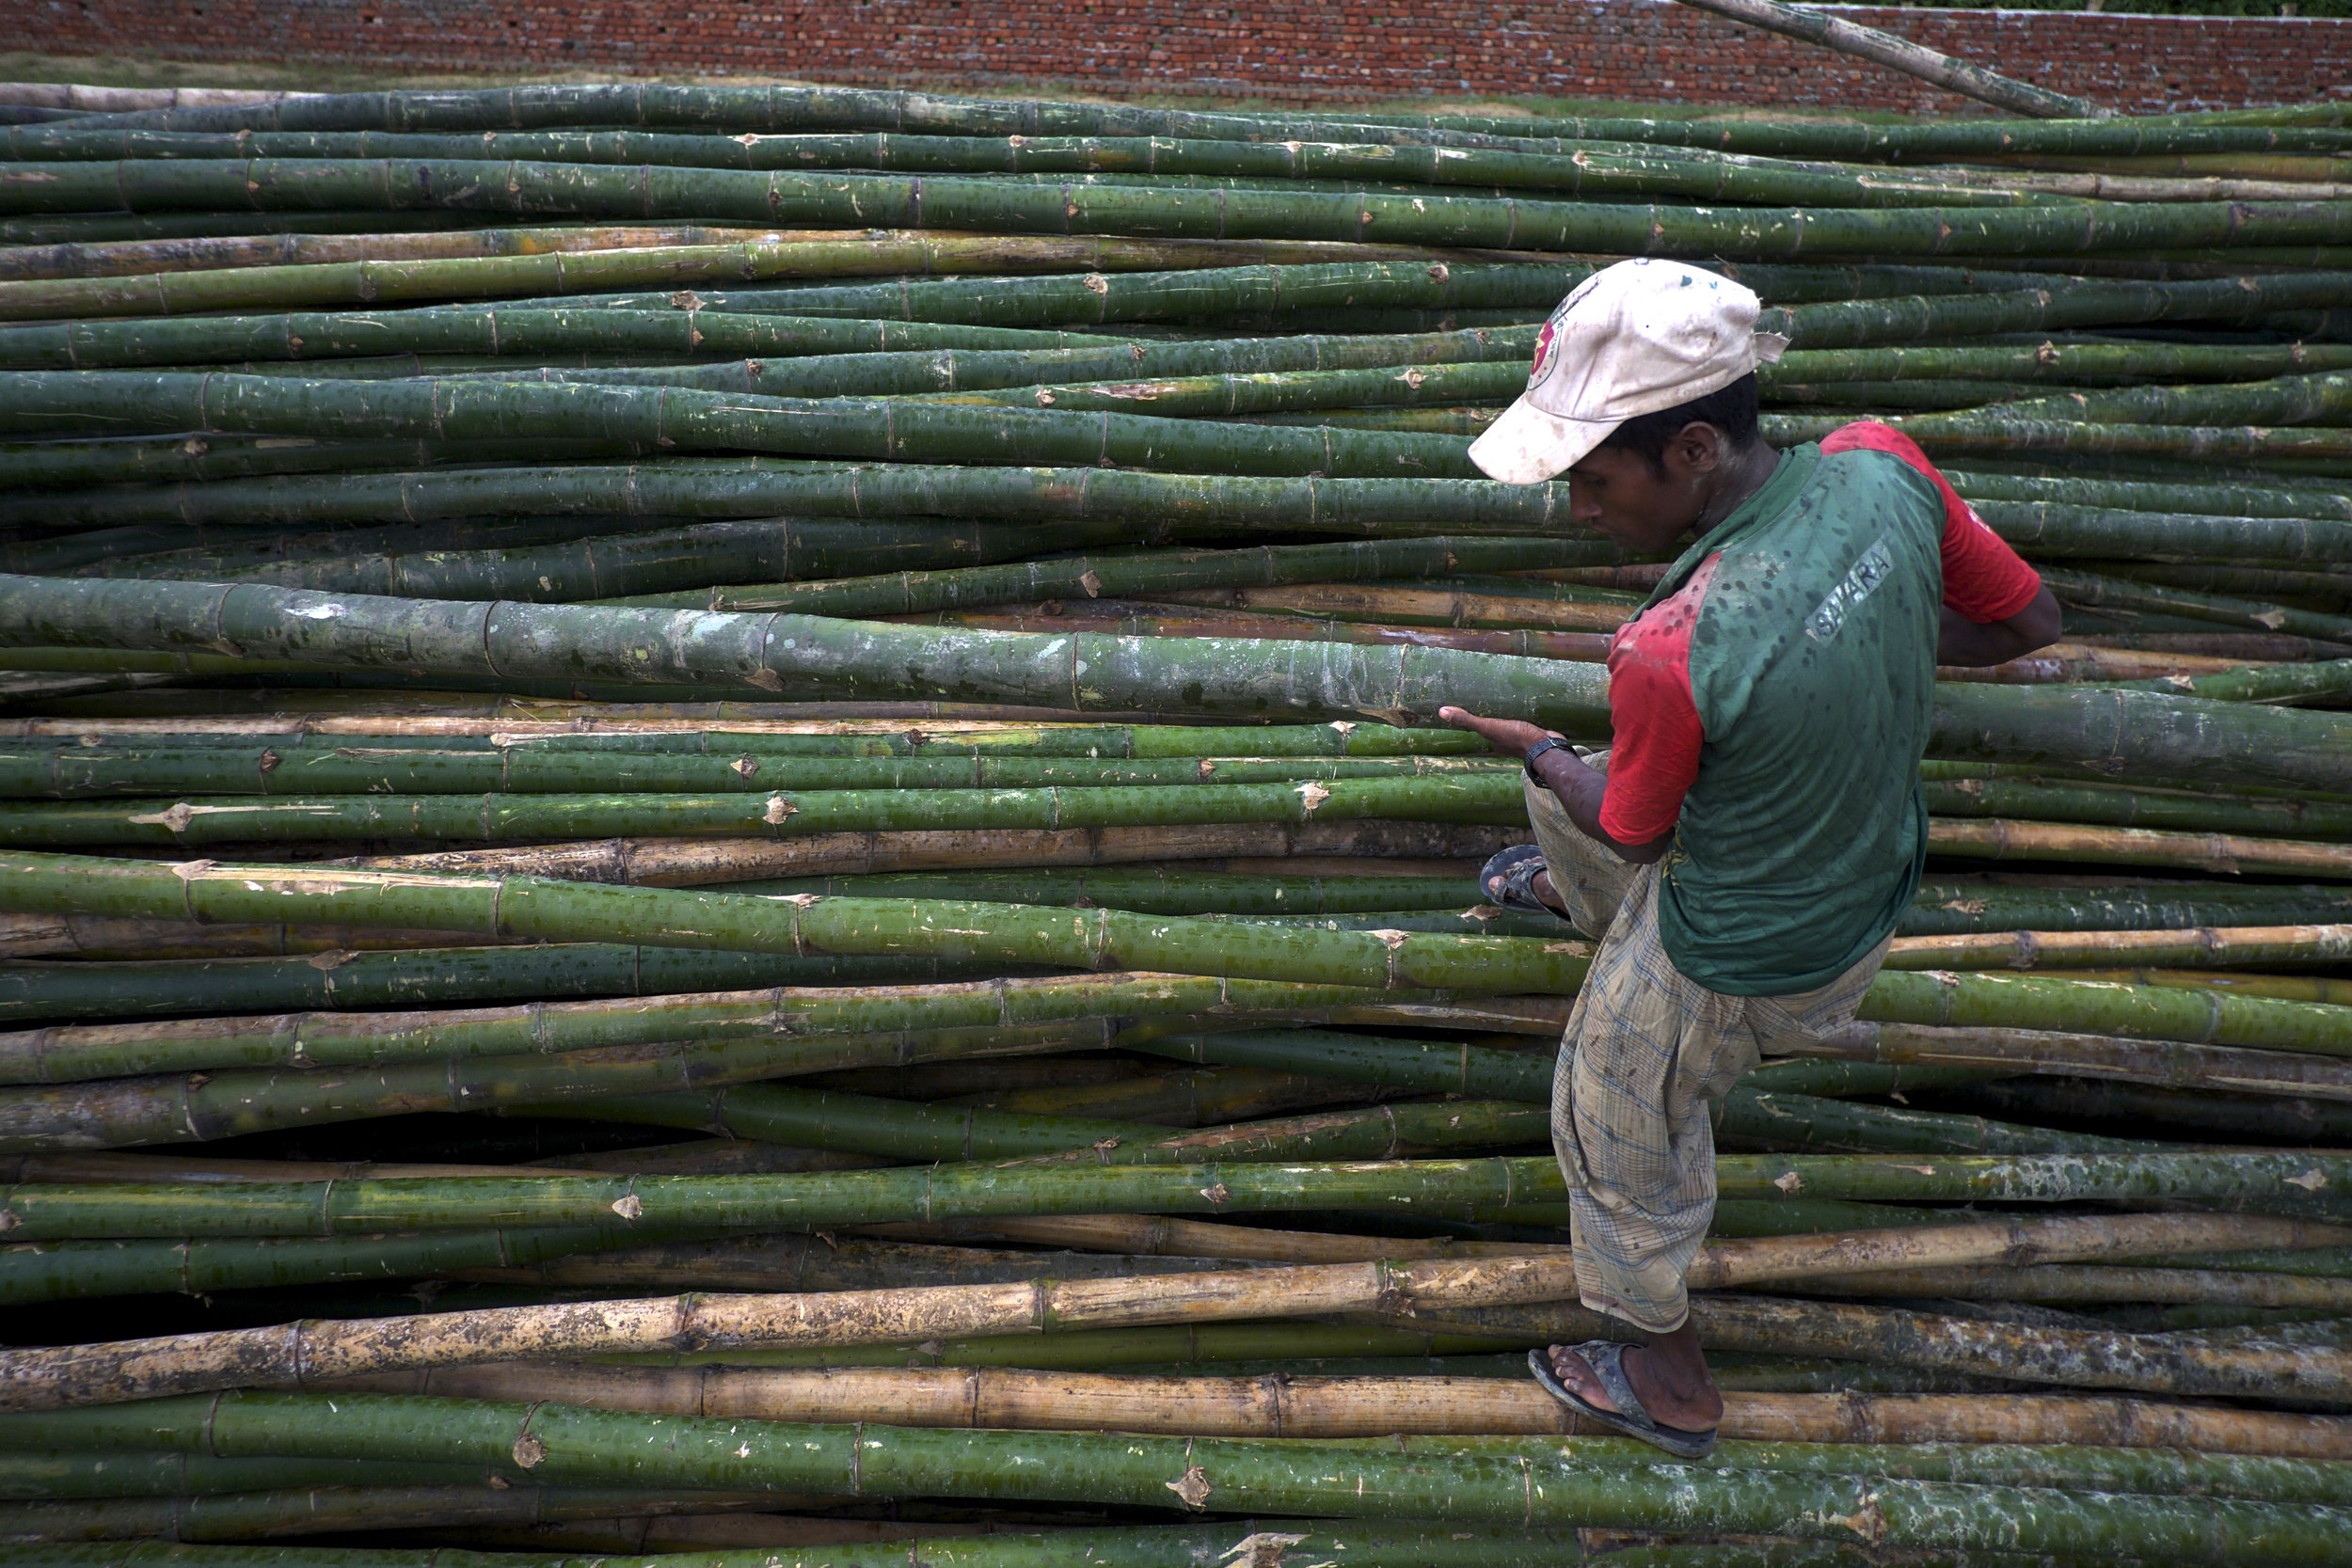 A Rohingya man climbs on a stack of bamboo poles to select one to rebuild his house. (Credit: Dene-Hern Chen)